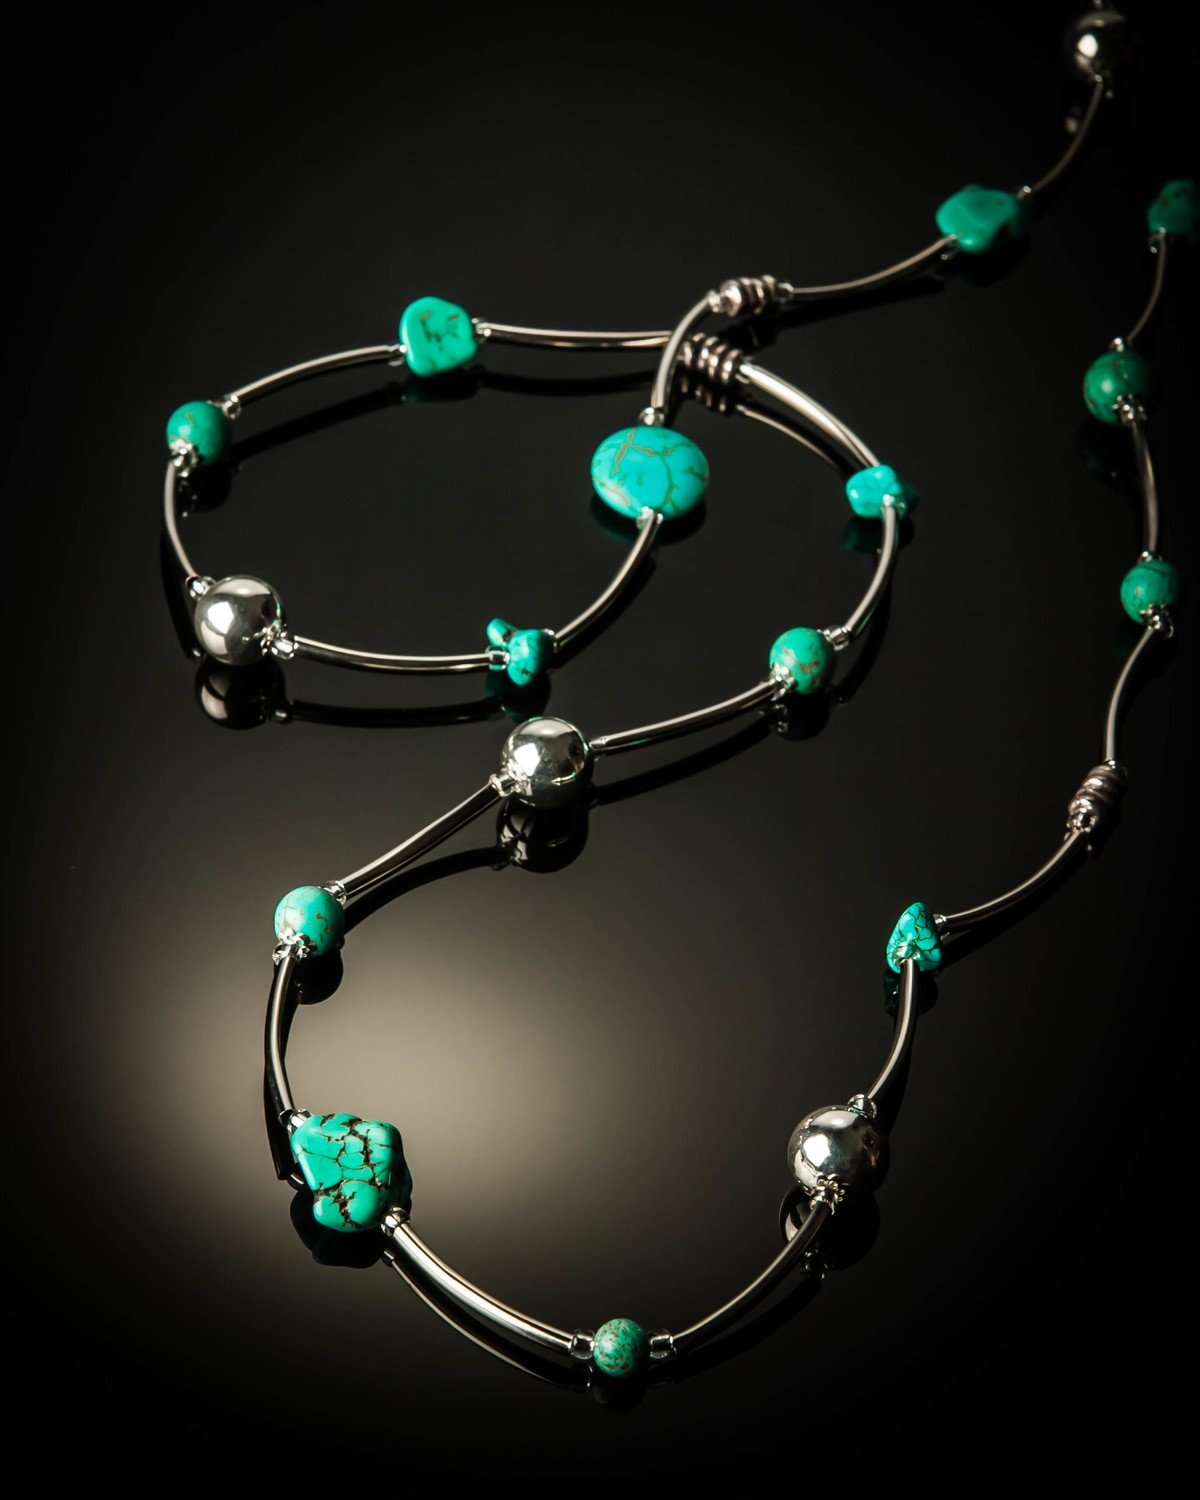 Turquoise Stainless Steel Necklace